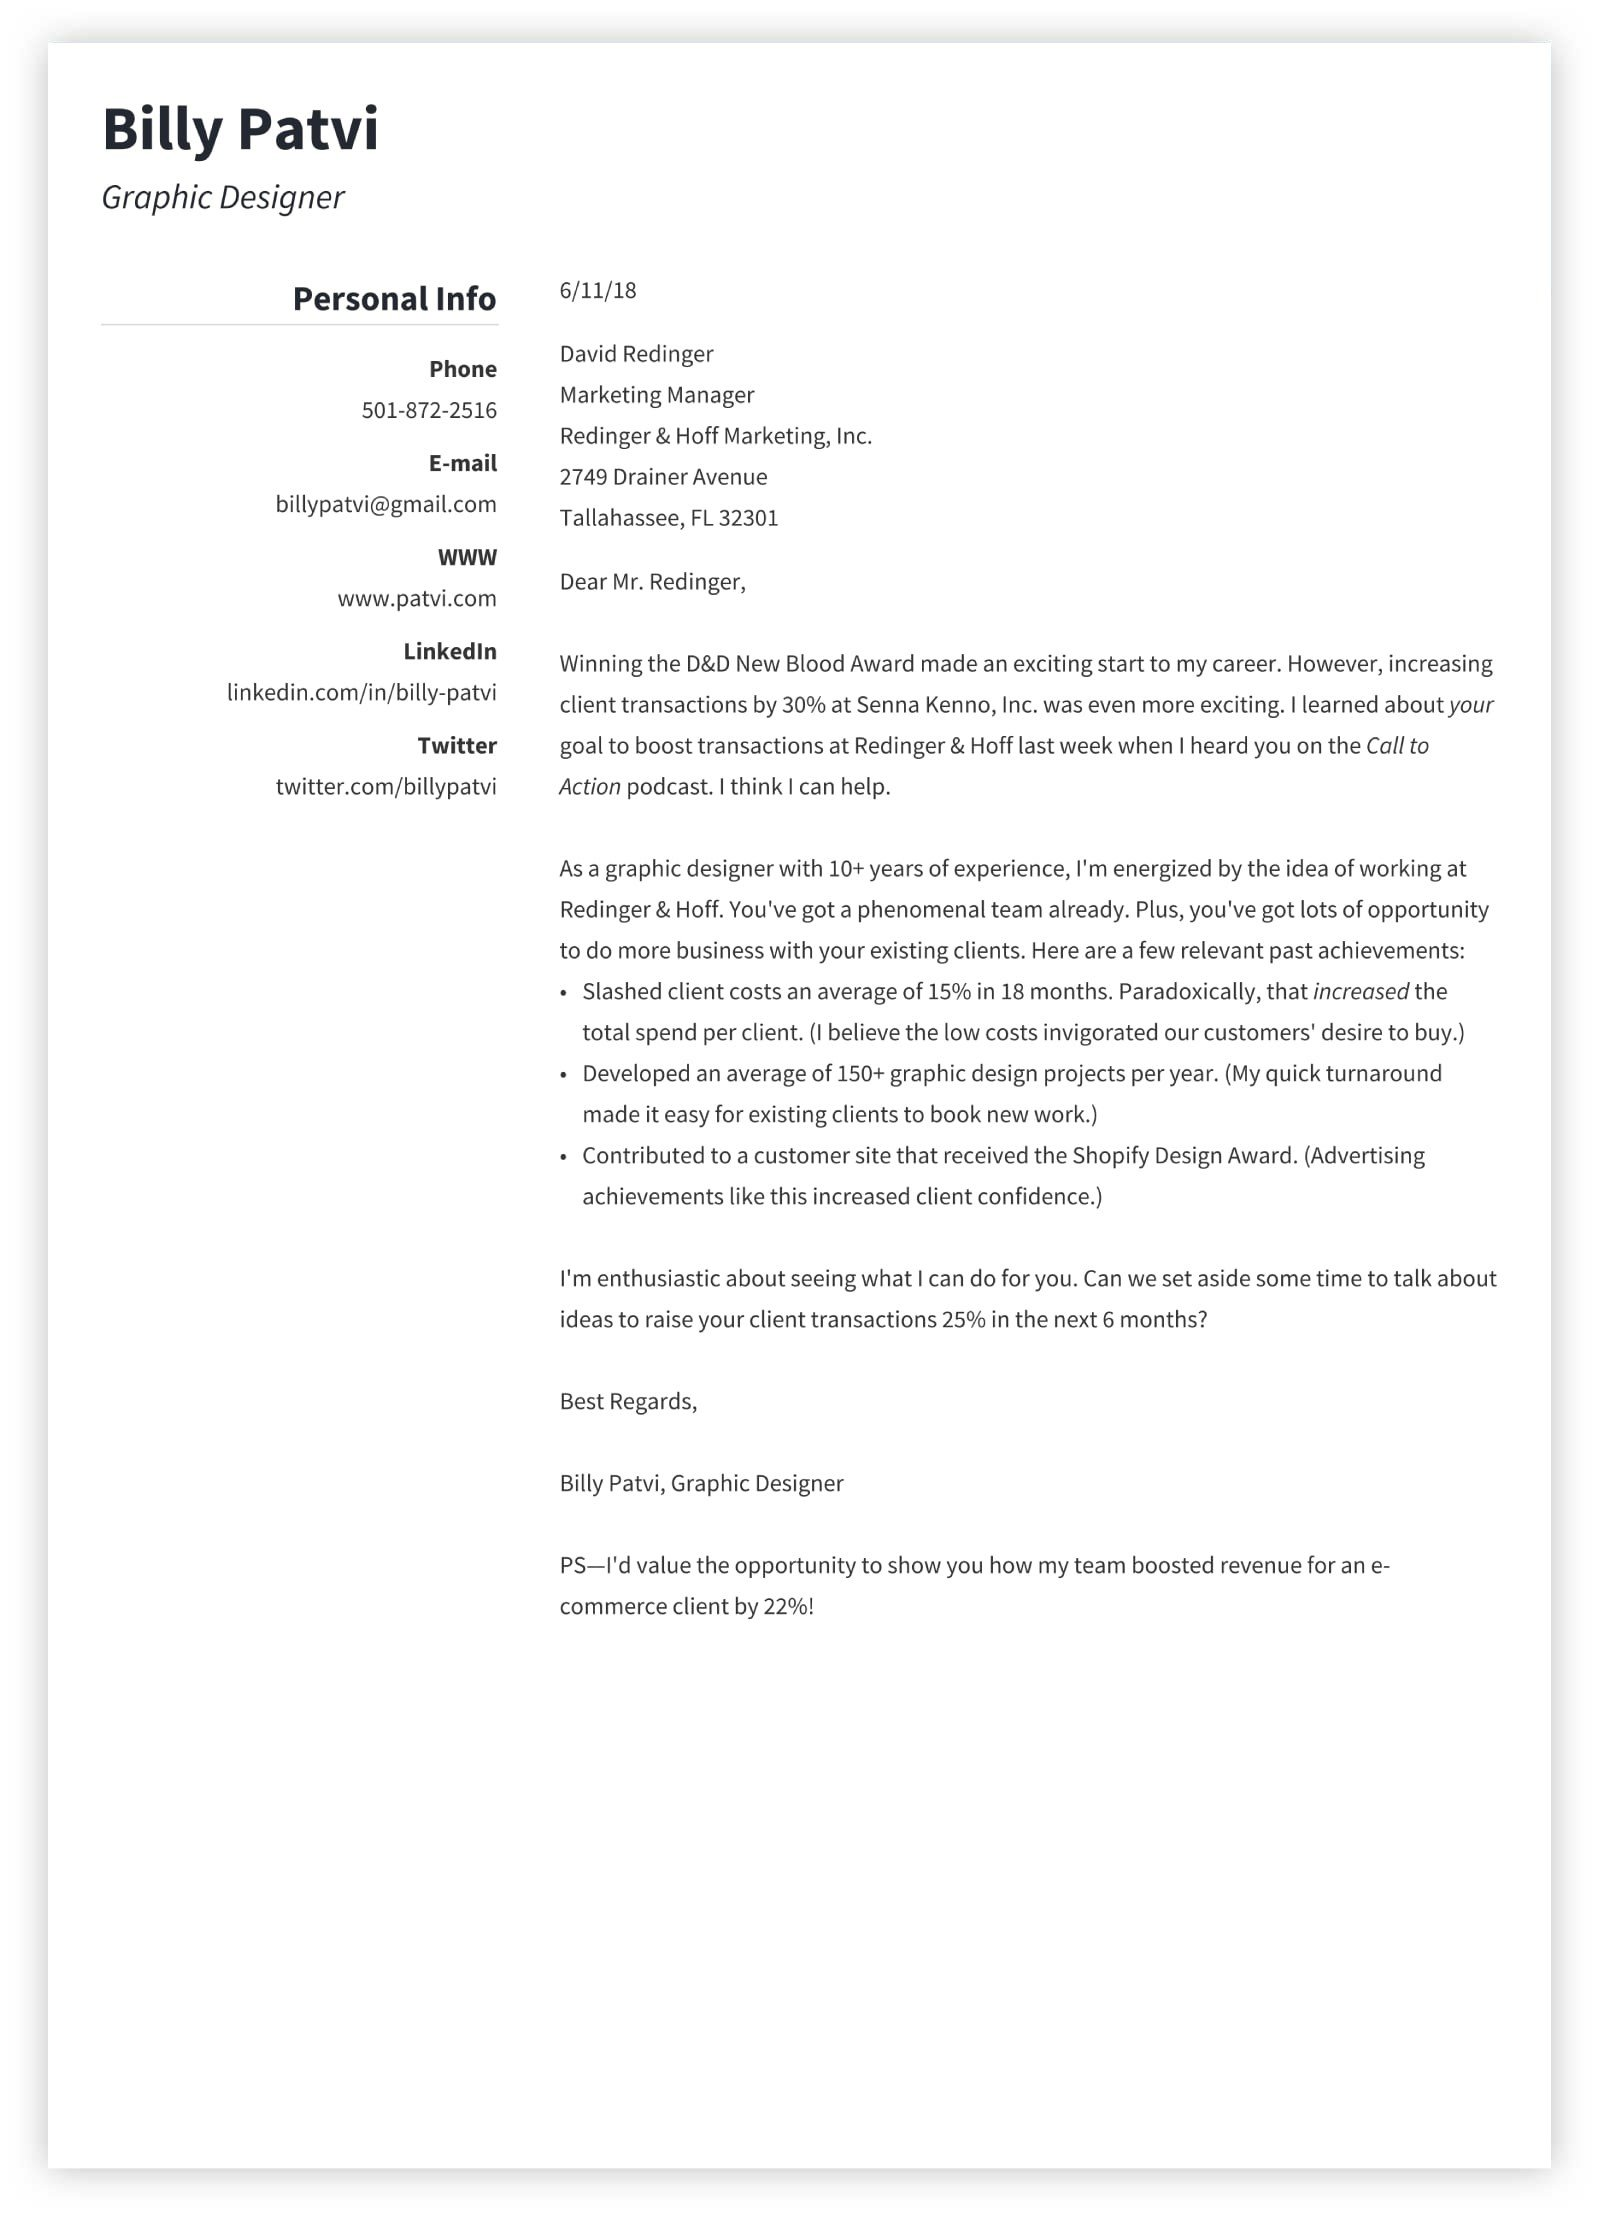 Cover Letters For Resume Examples | How To Write A Cover Letter In 8 Simple Steps 12 Examples